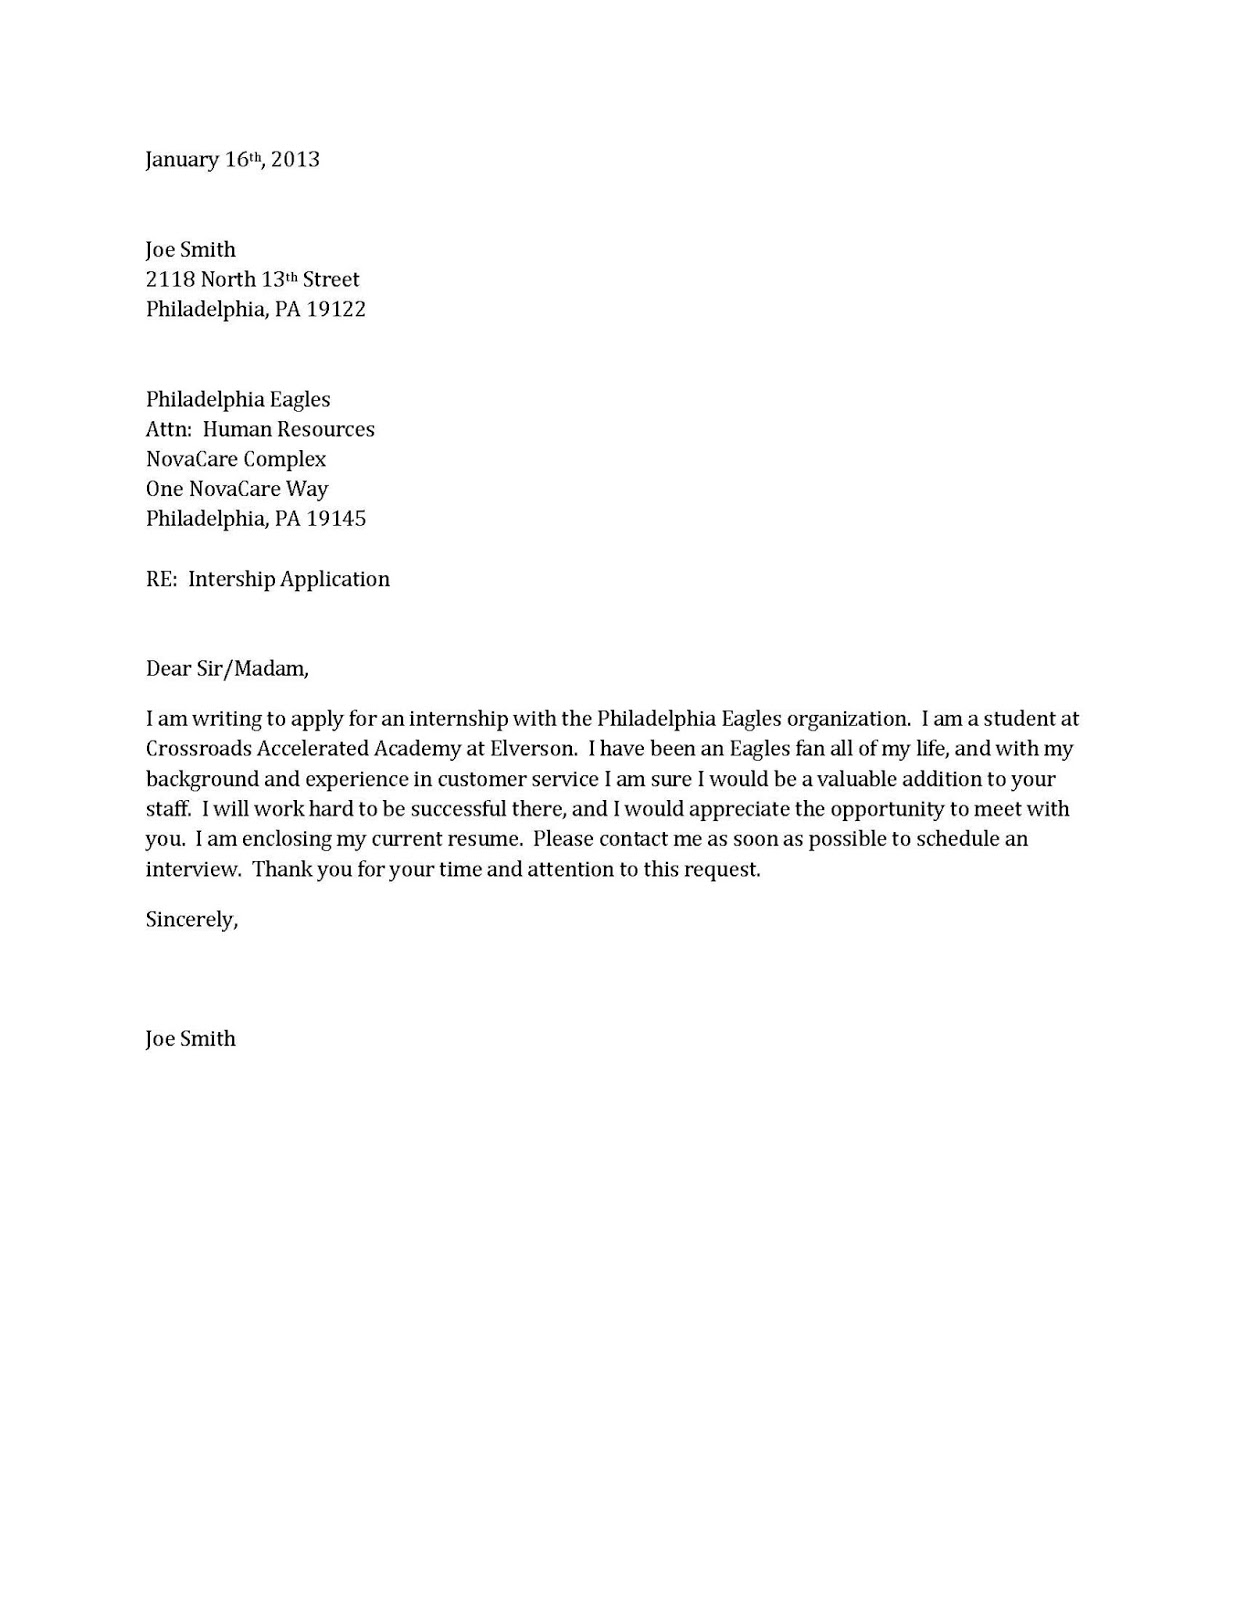 English Composition 2: Writing an Analysis job cover letter writing ...